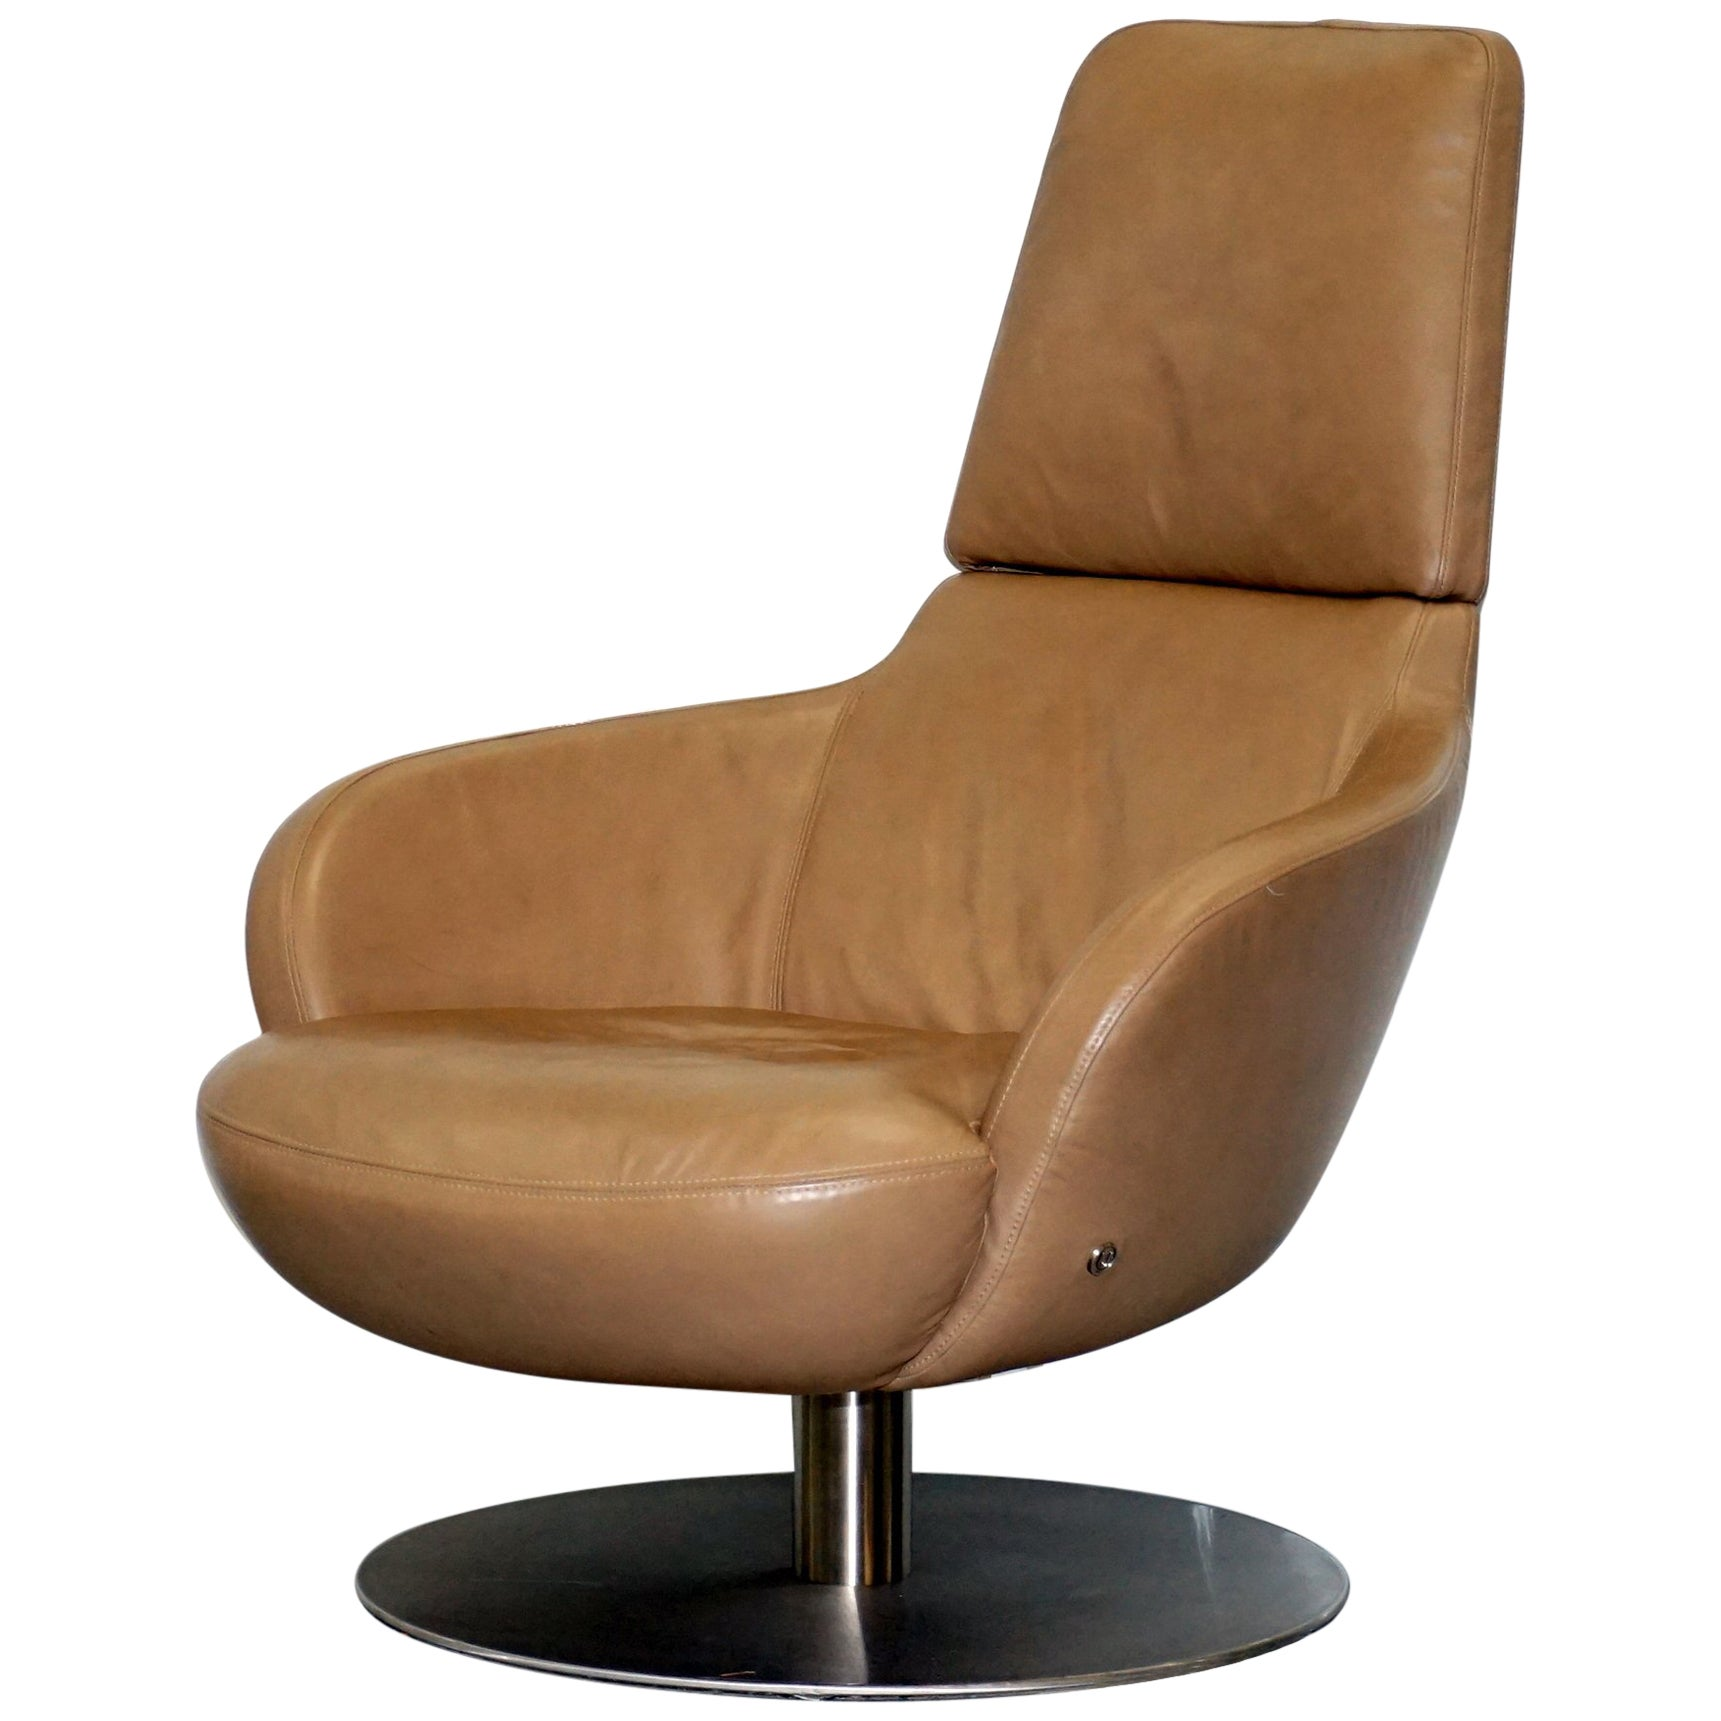 Rare Made In Italy Natuzzi Brend Swivel Armchair Aged Brown Leather